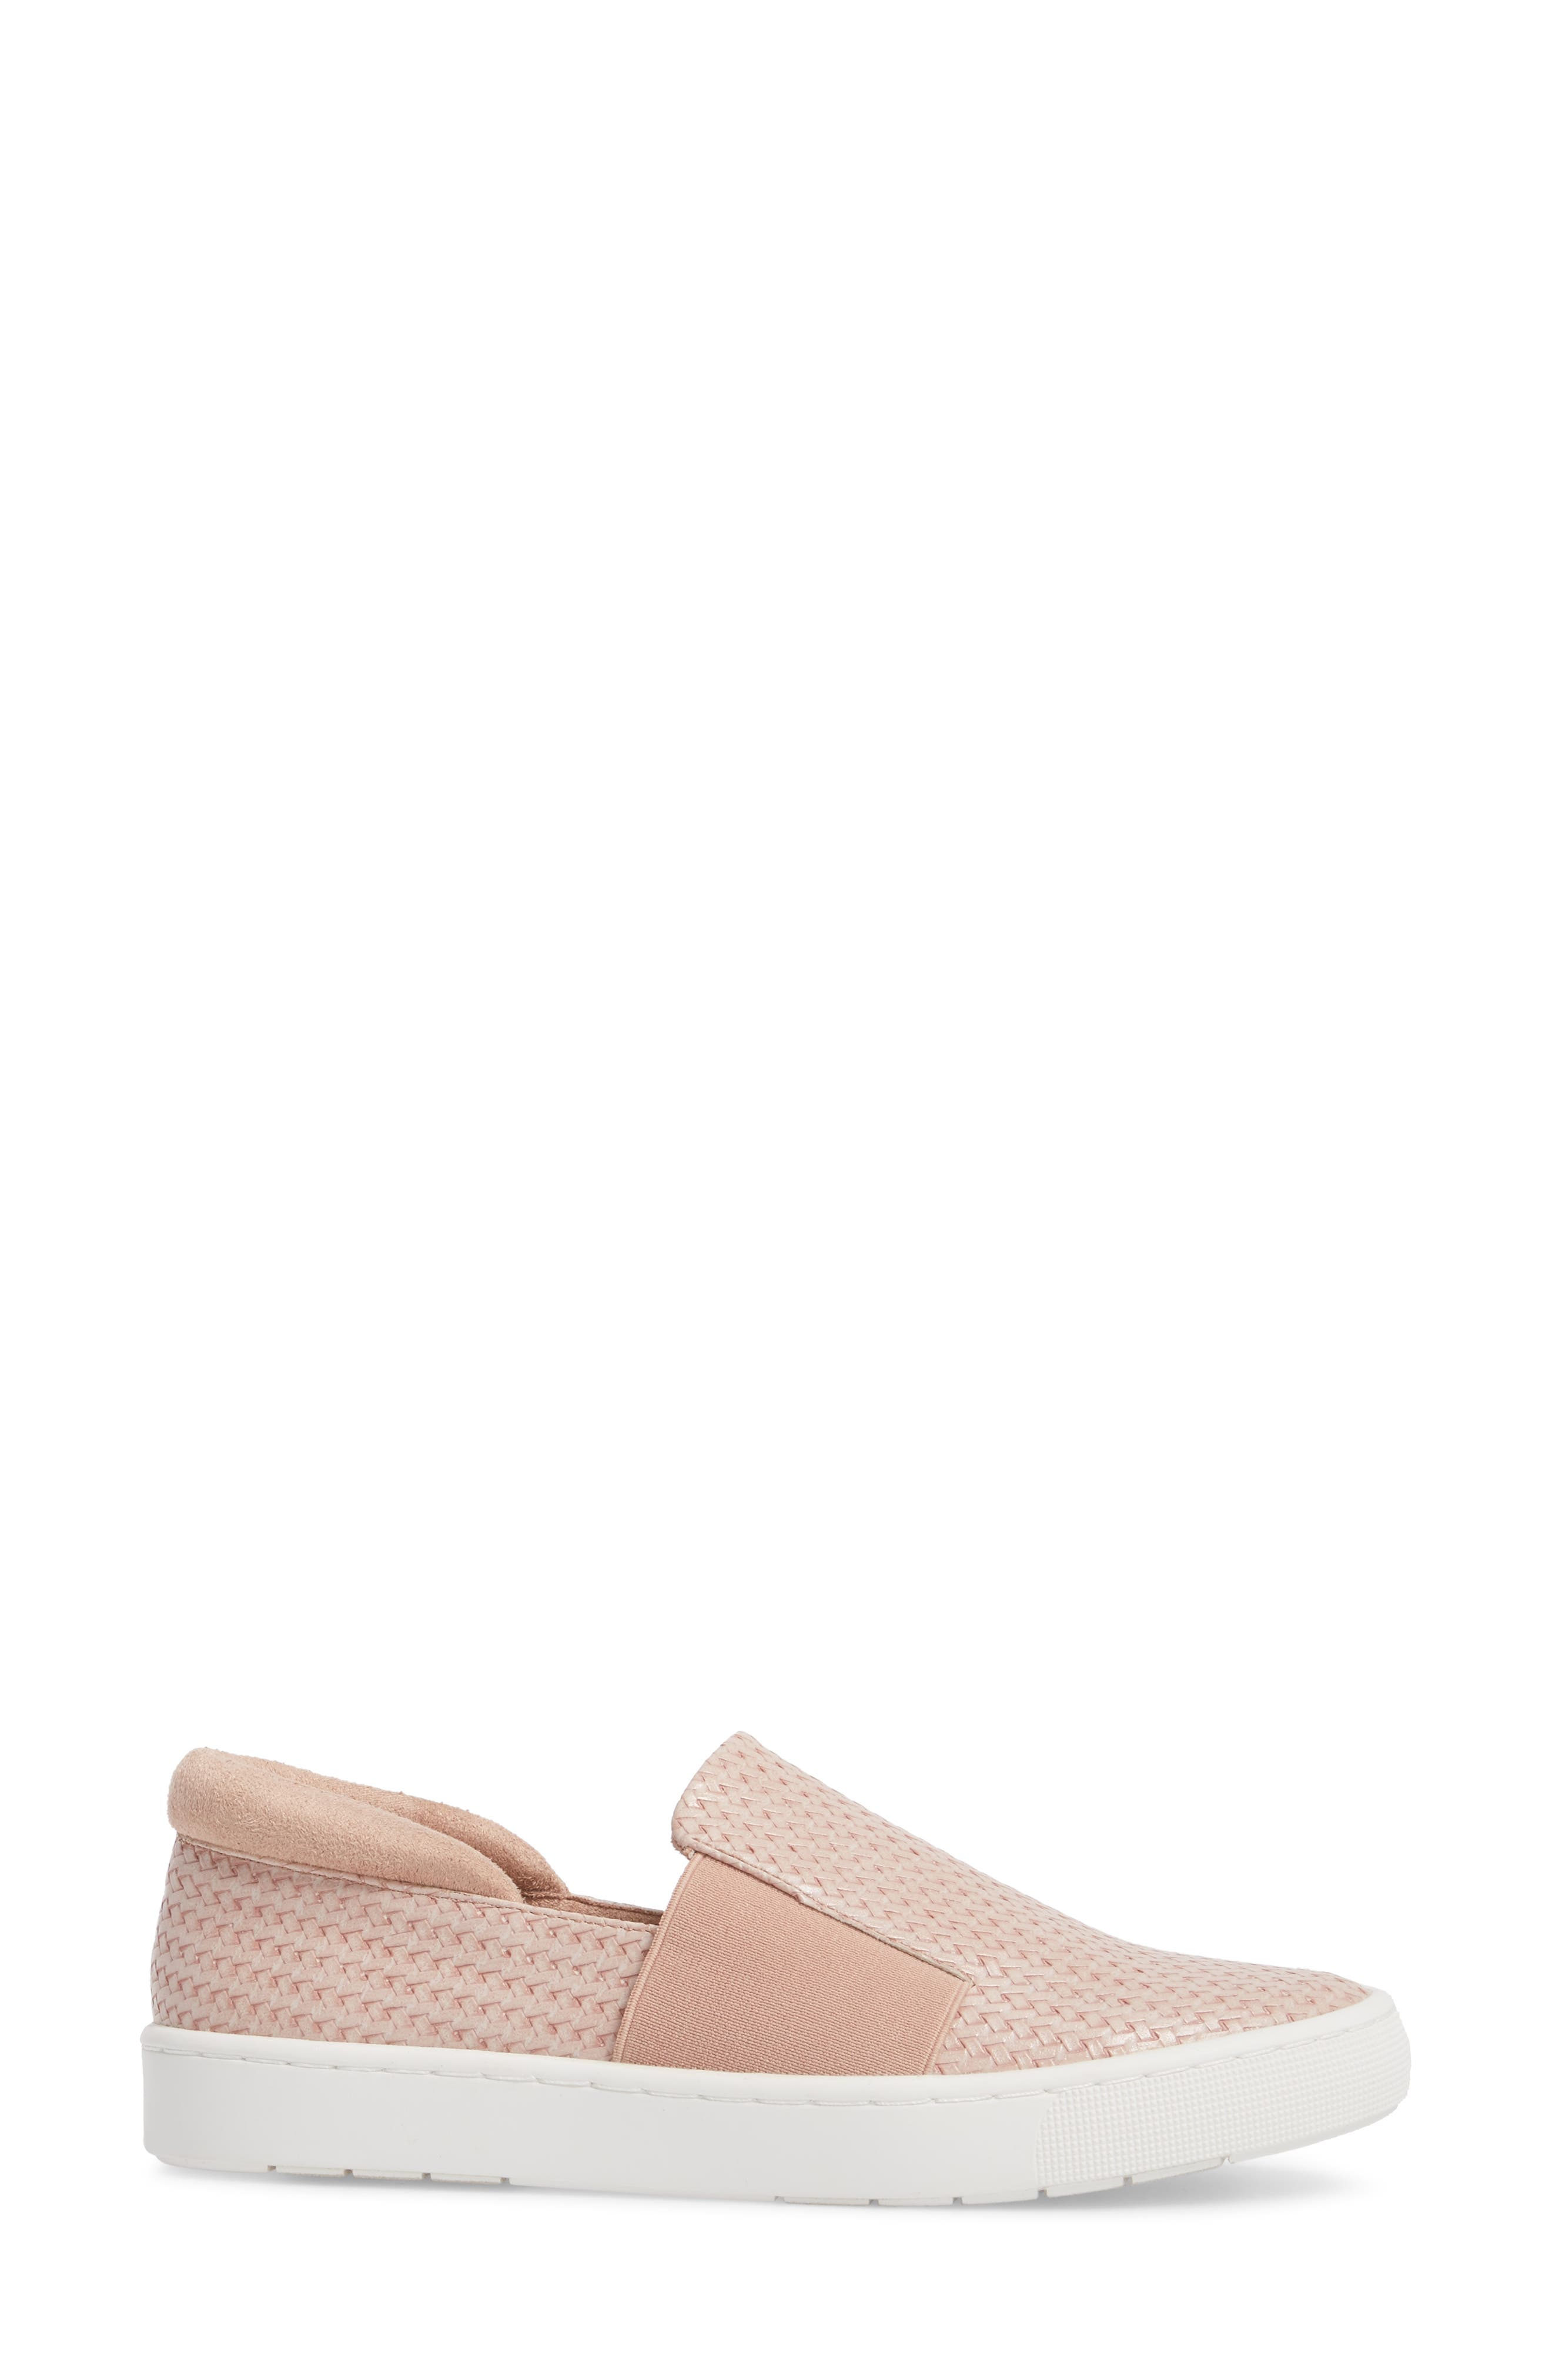 Ramp II Slip-On Sneaker,                             Alternate thumbnail 3, color,                             BLUSH FABRIC